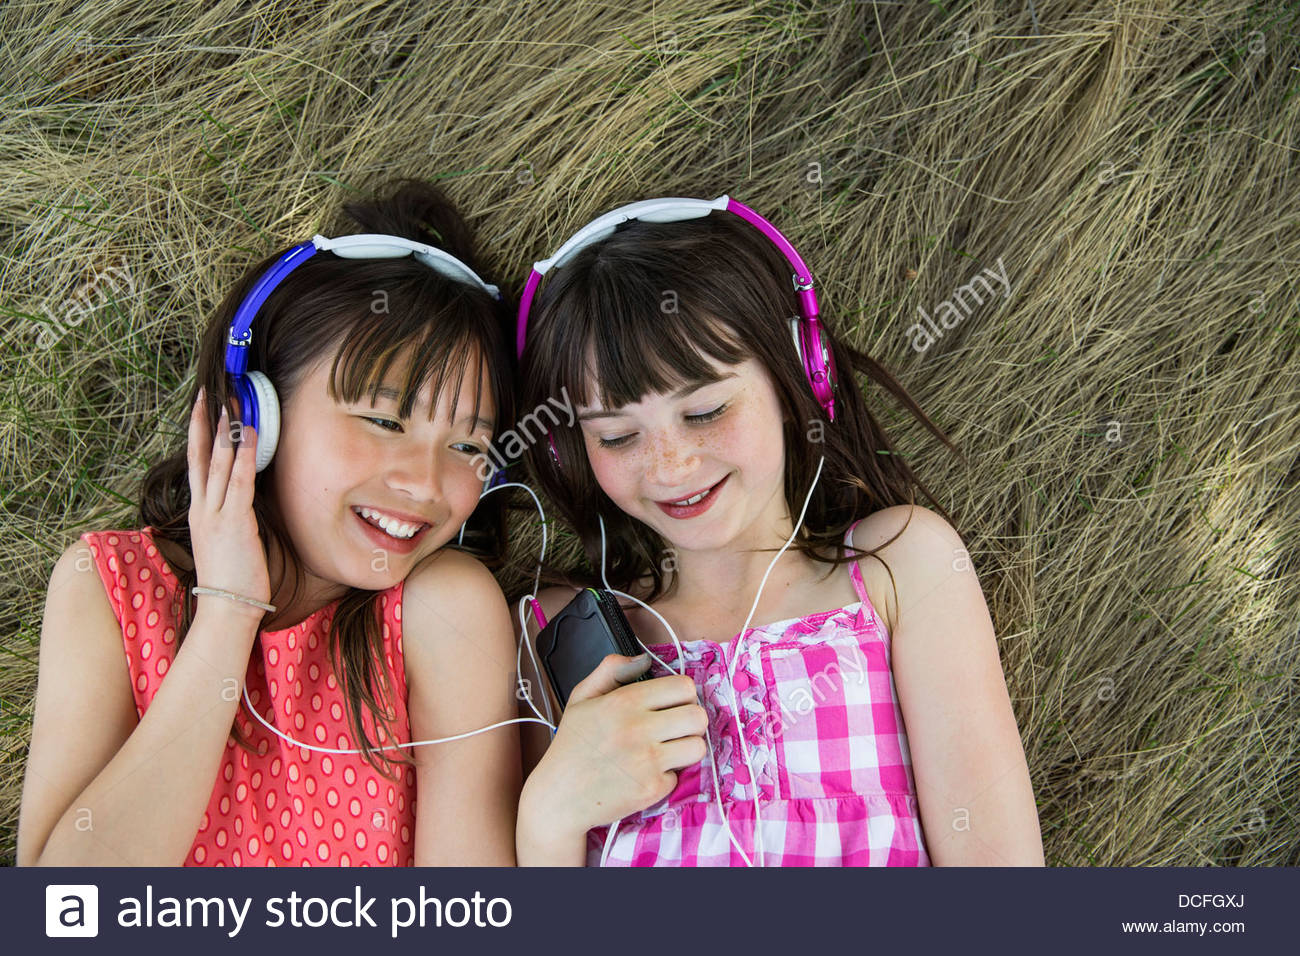 Les filles se coucher listening to headphones Photo Stock